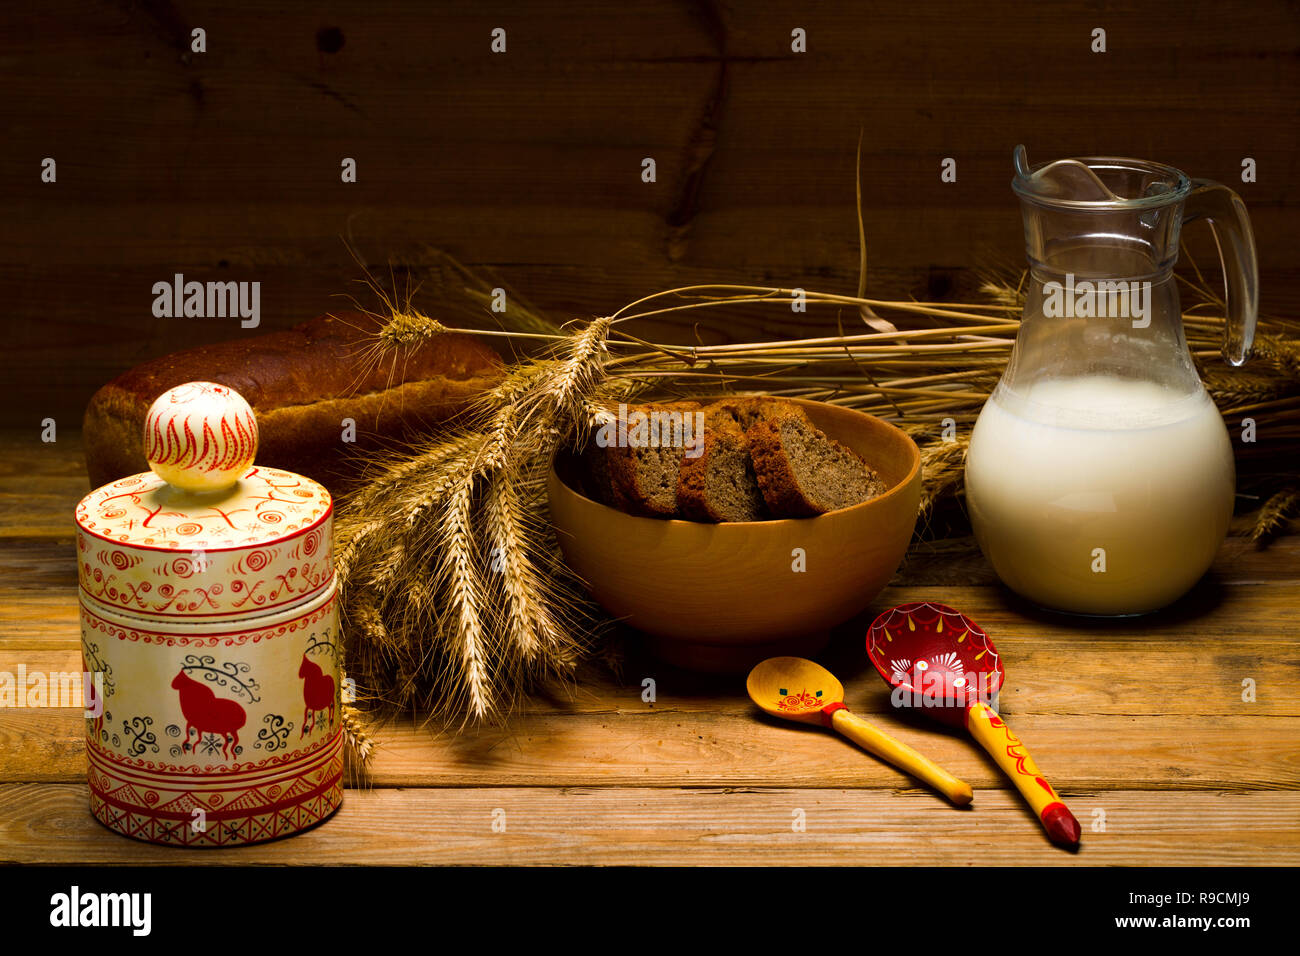 Still life with a glass jug of milk, a glass mug, rye bread, ears of corn on the background of wooden boards - Stock Image